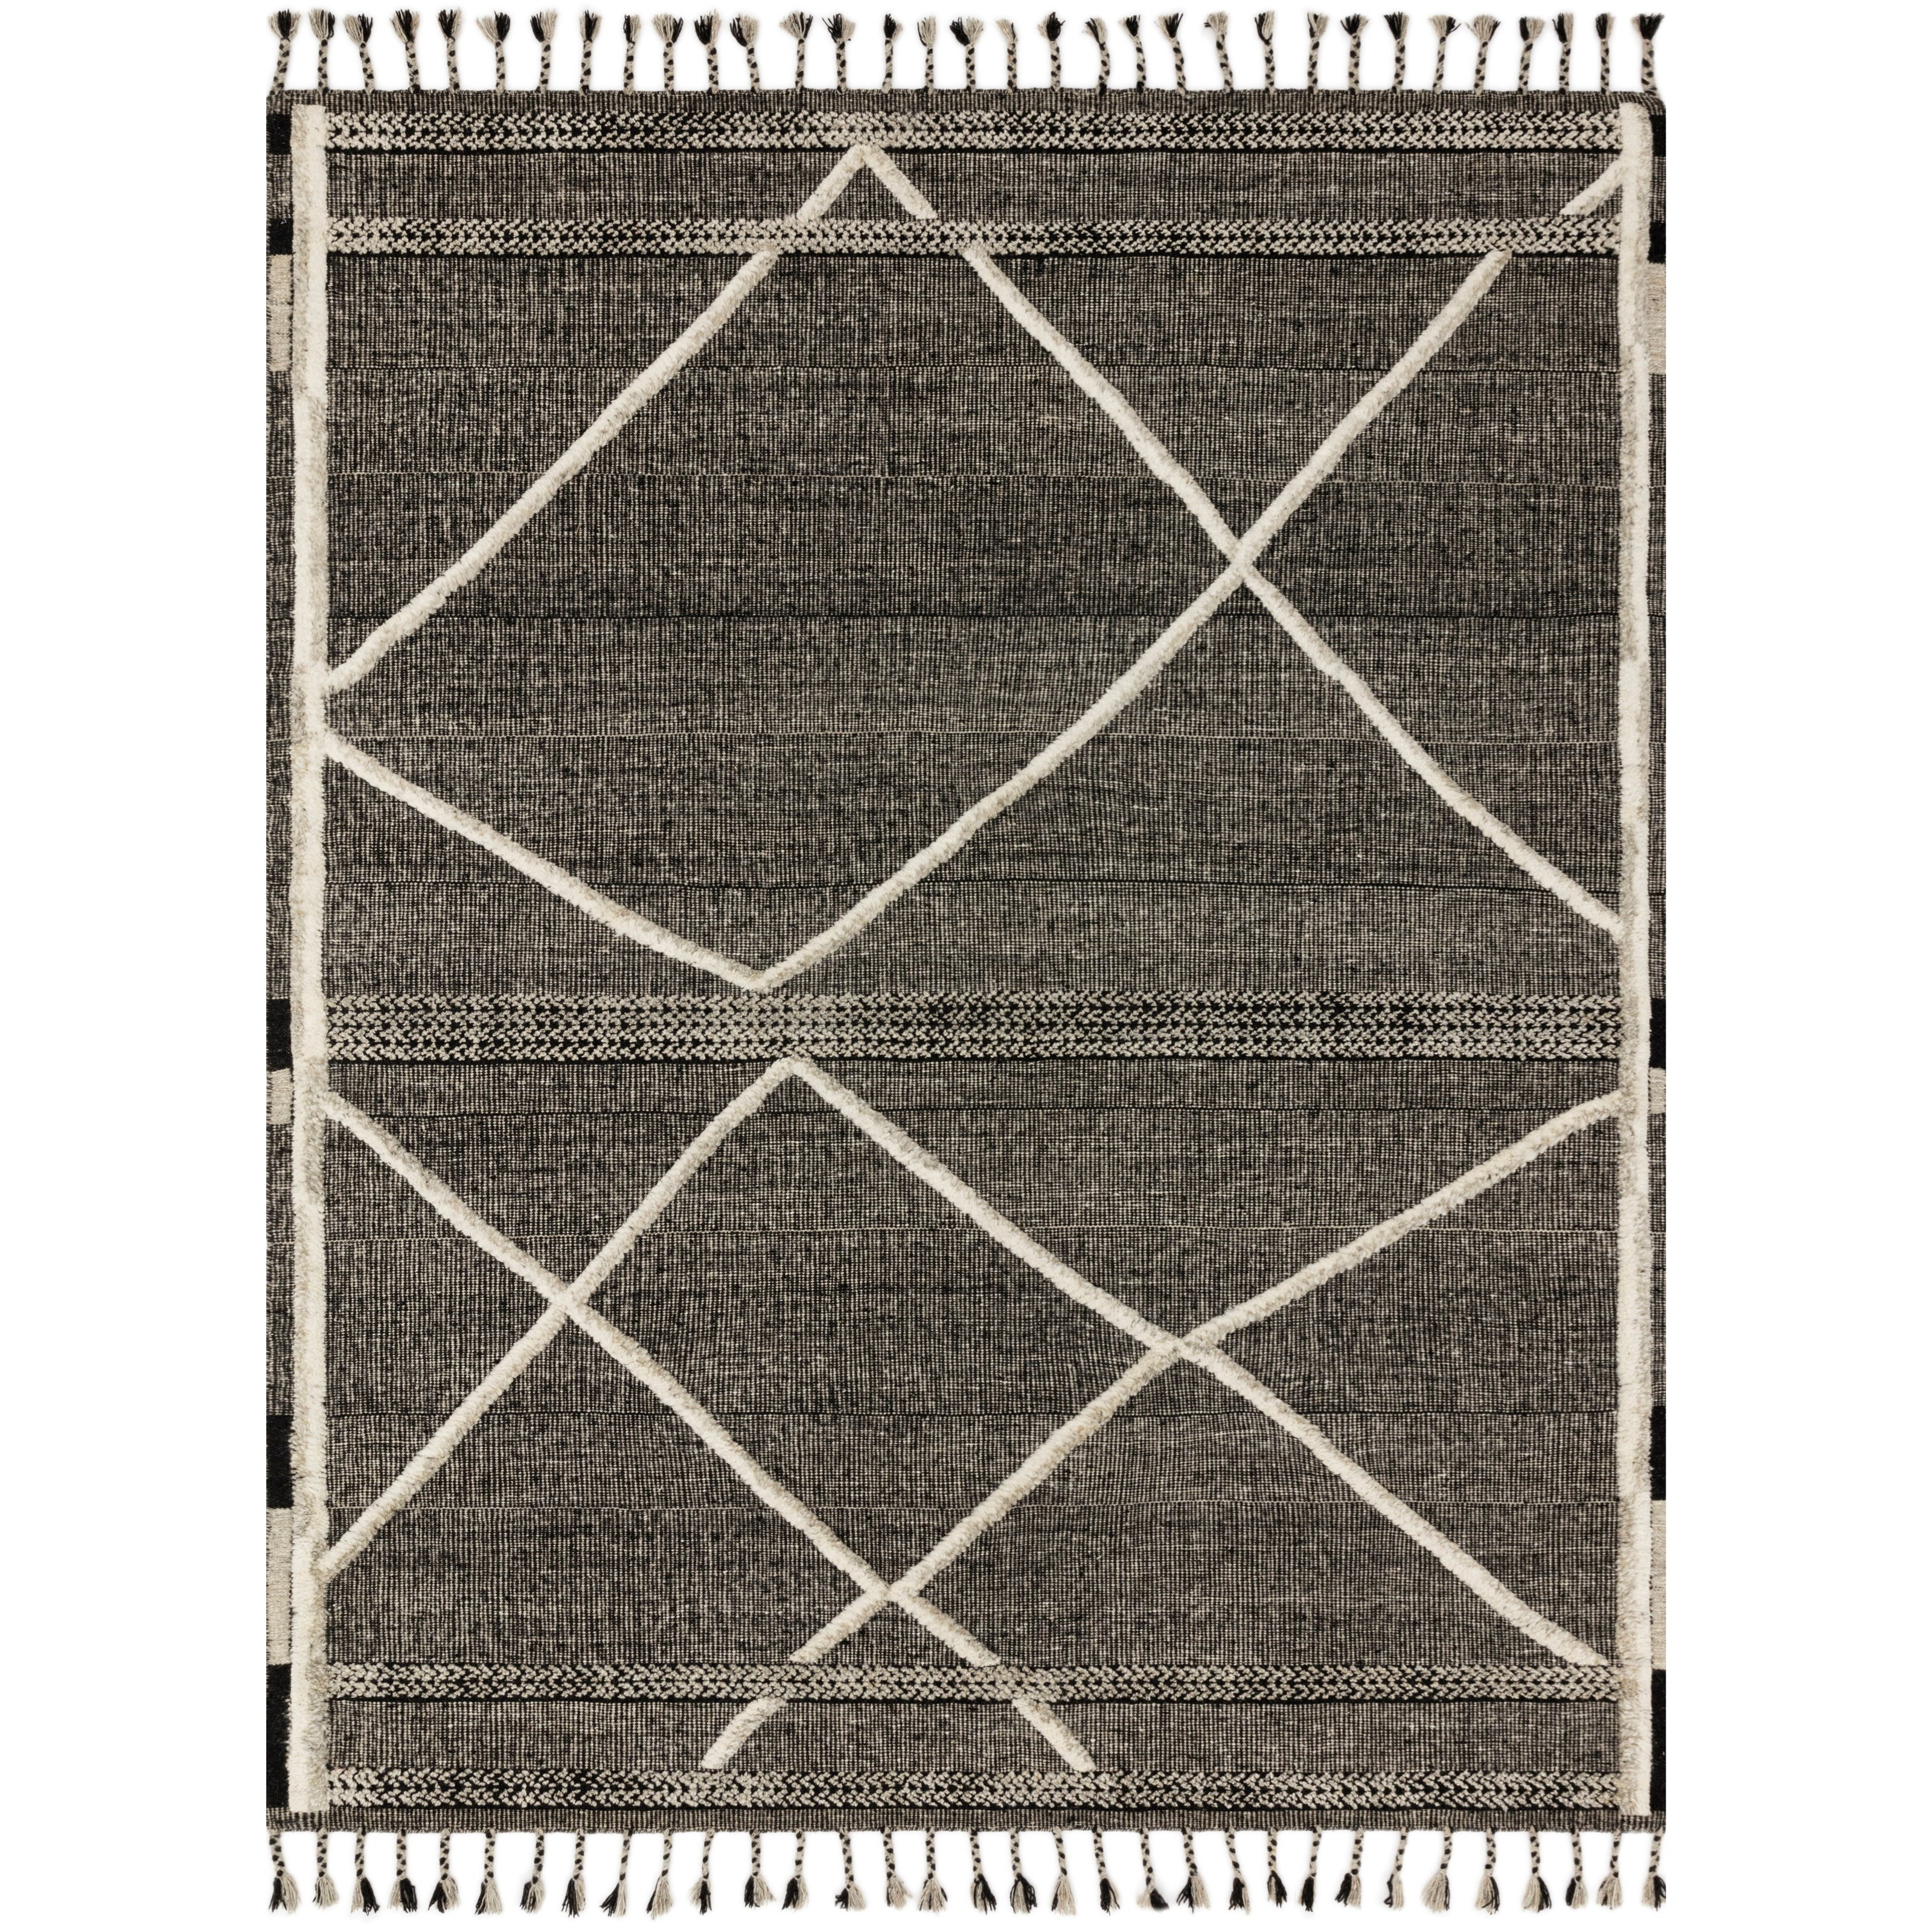 """Iman 8'6"""" x 11'6"""" Beige / Charcoal Rug by Loloi Rugs at Virginia Furniture Market"""